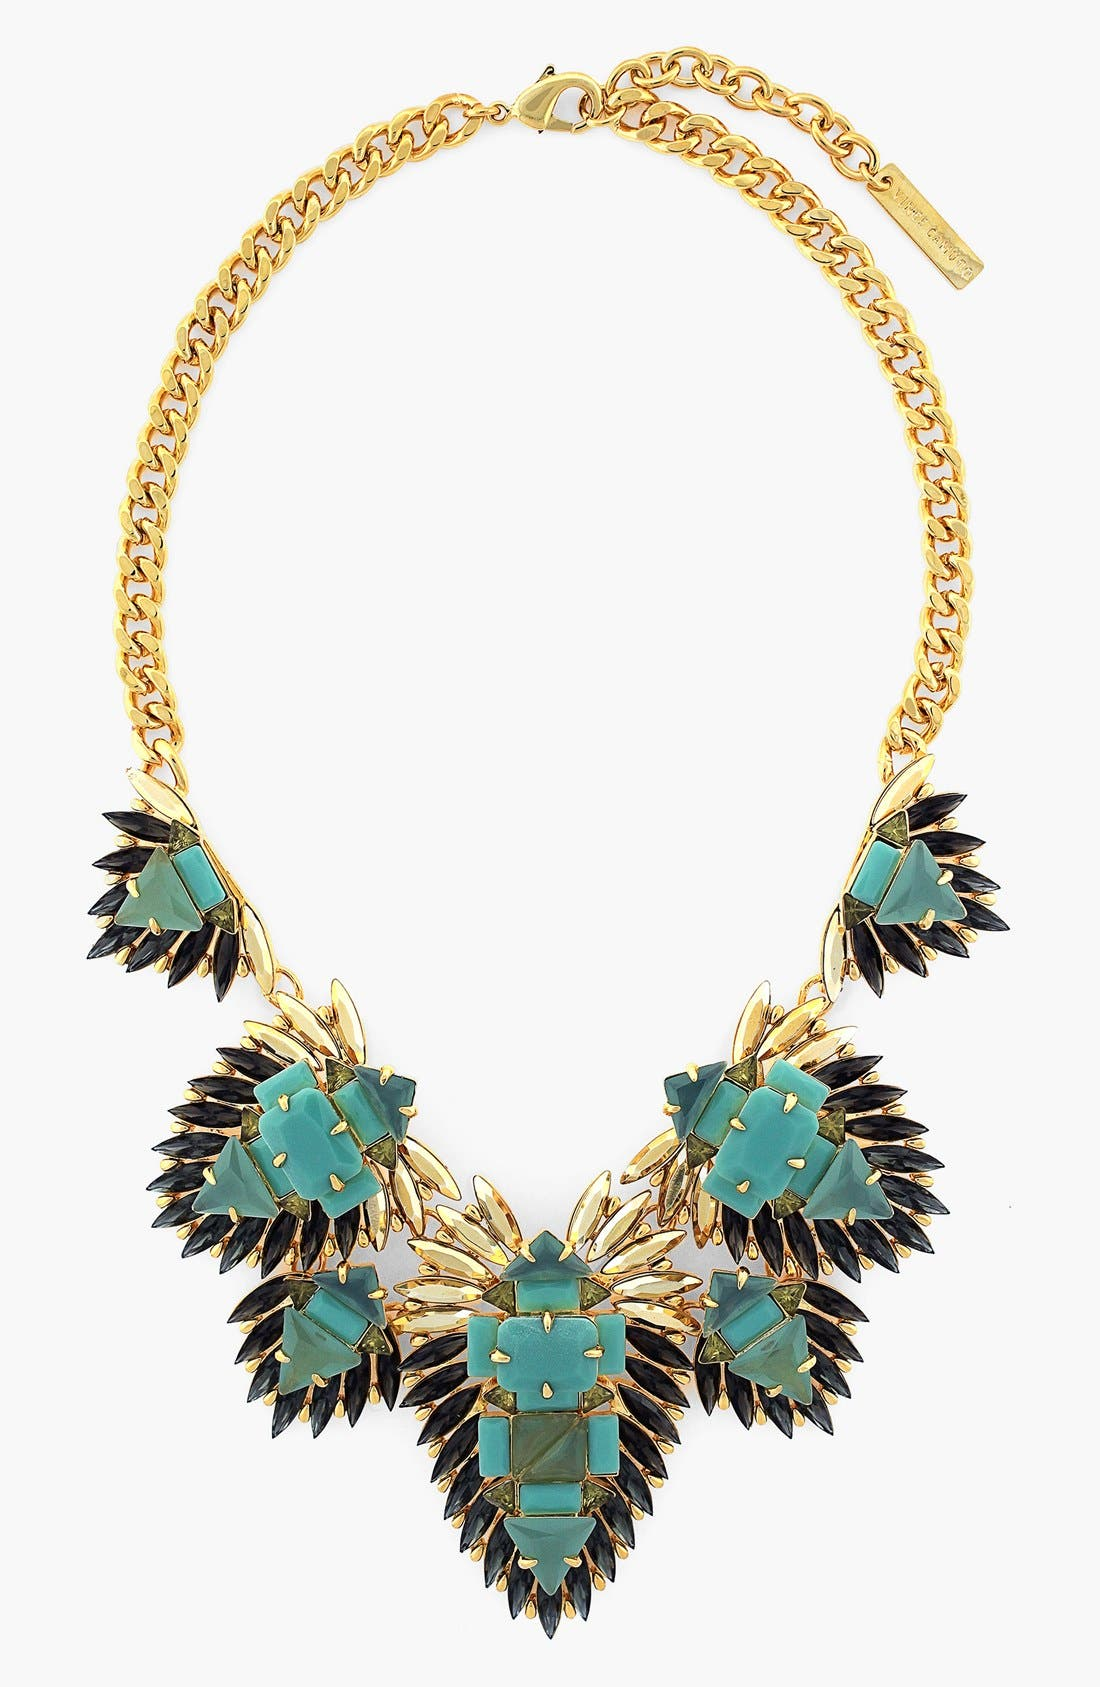 Alternate Image 1 Selected - Vince Camuto 'Aqua Glam' Statement Necklace